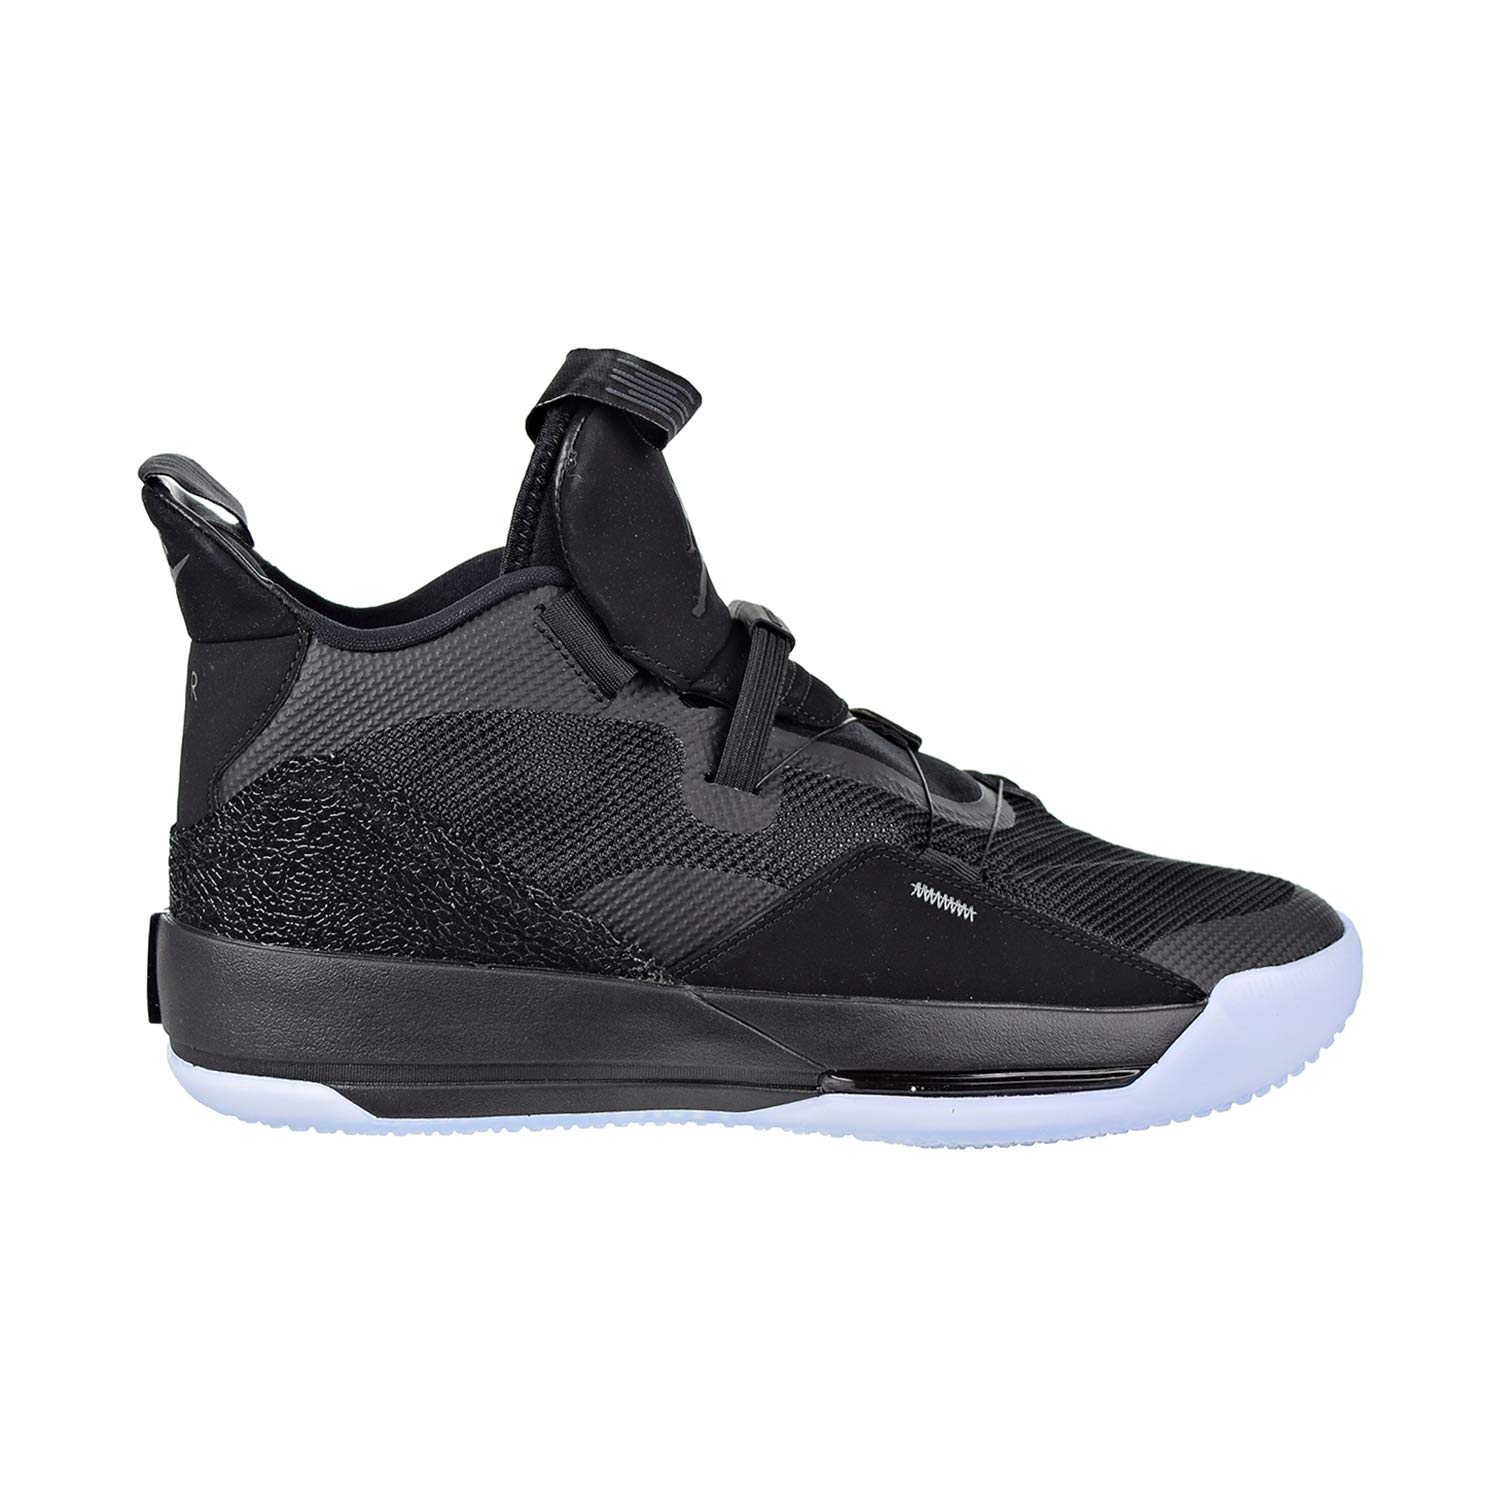 292268c69d6 Amazon.com | Jordan Nike Air XXXIII Men's Basketball Shoes Black/Dark  Grey-White aq8830-002 | Basketball